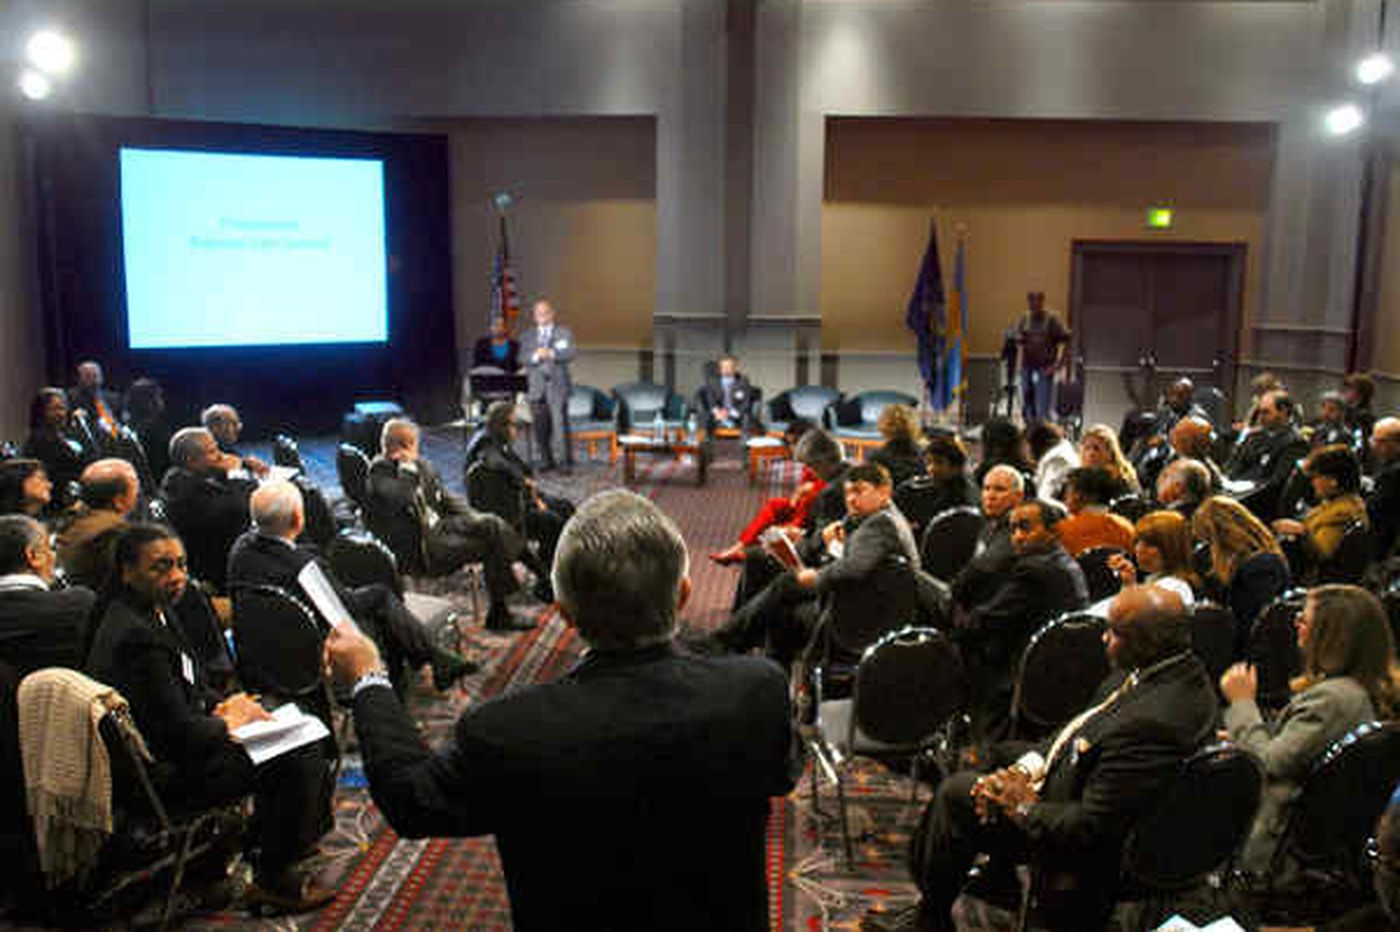 Economic ideas floated at local jobs summit